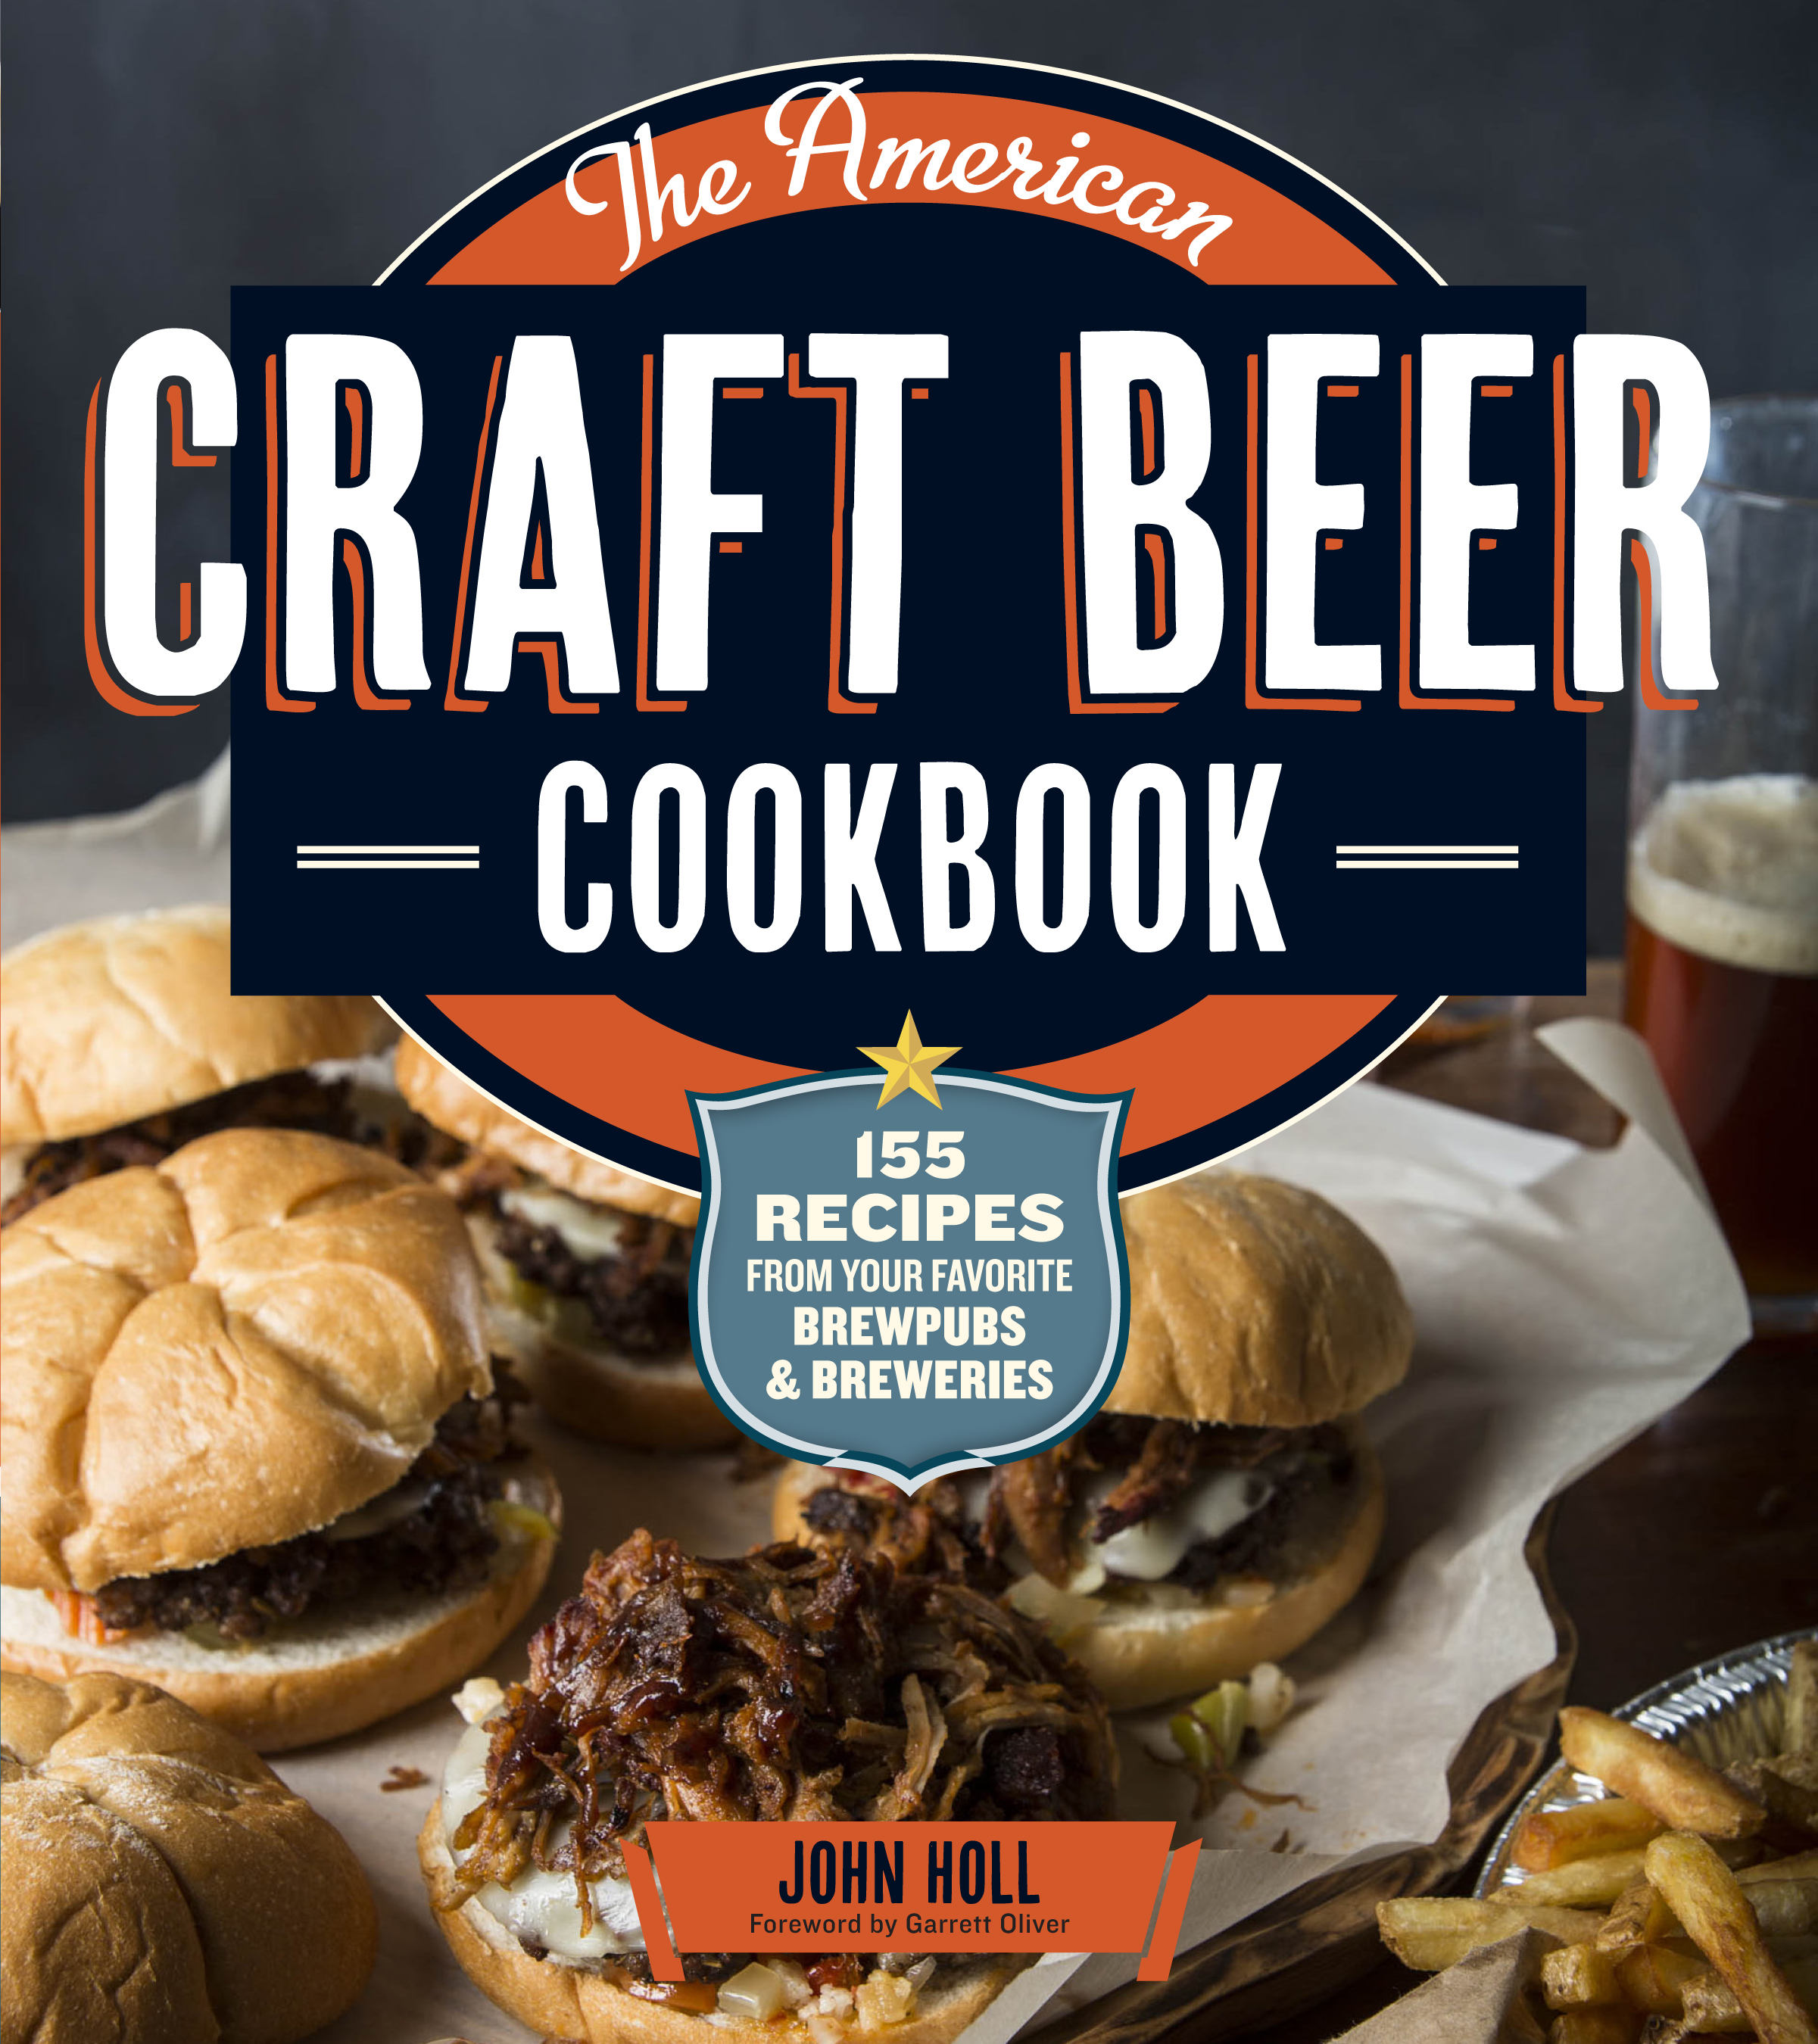 The American Craft Beer Cookbook 155 Recipes from Your Favorite Brewpubs and Breweries - John Holl